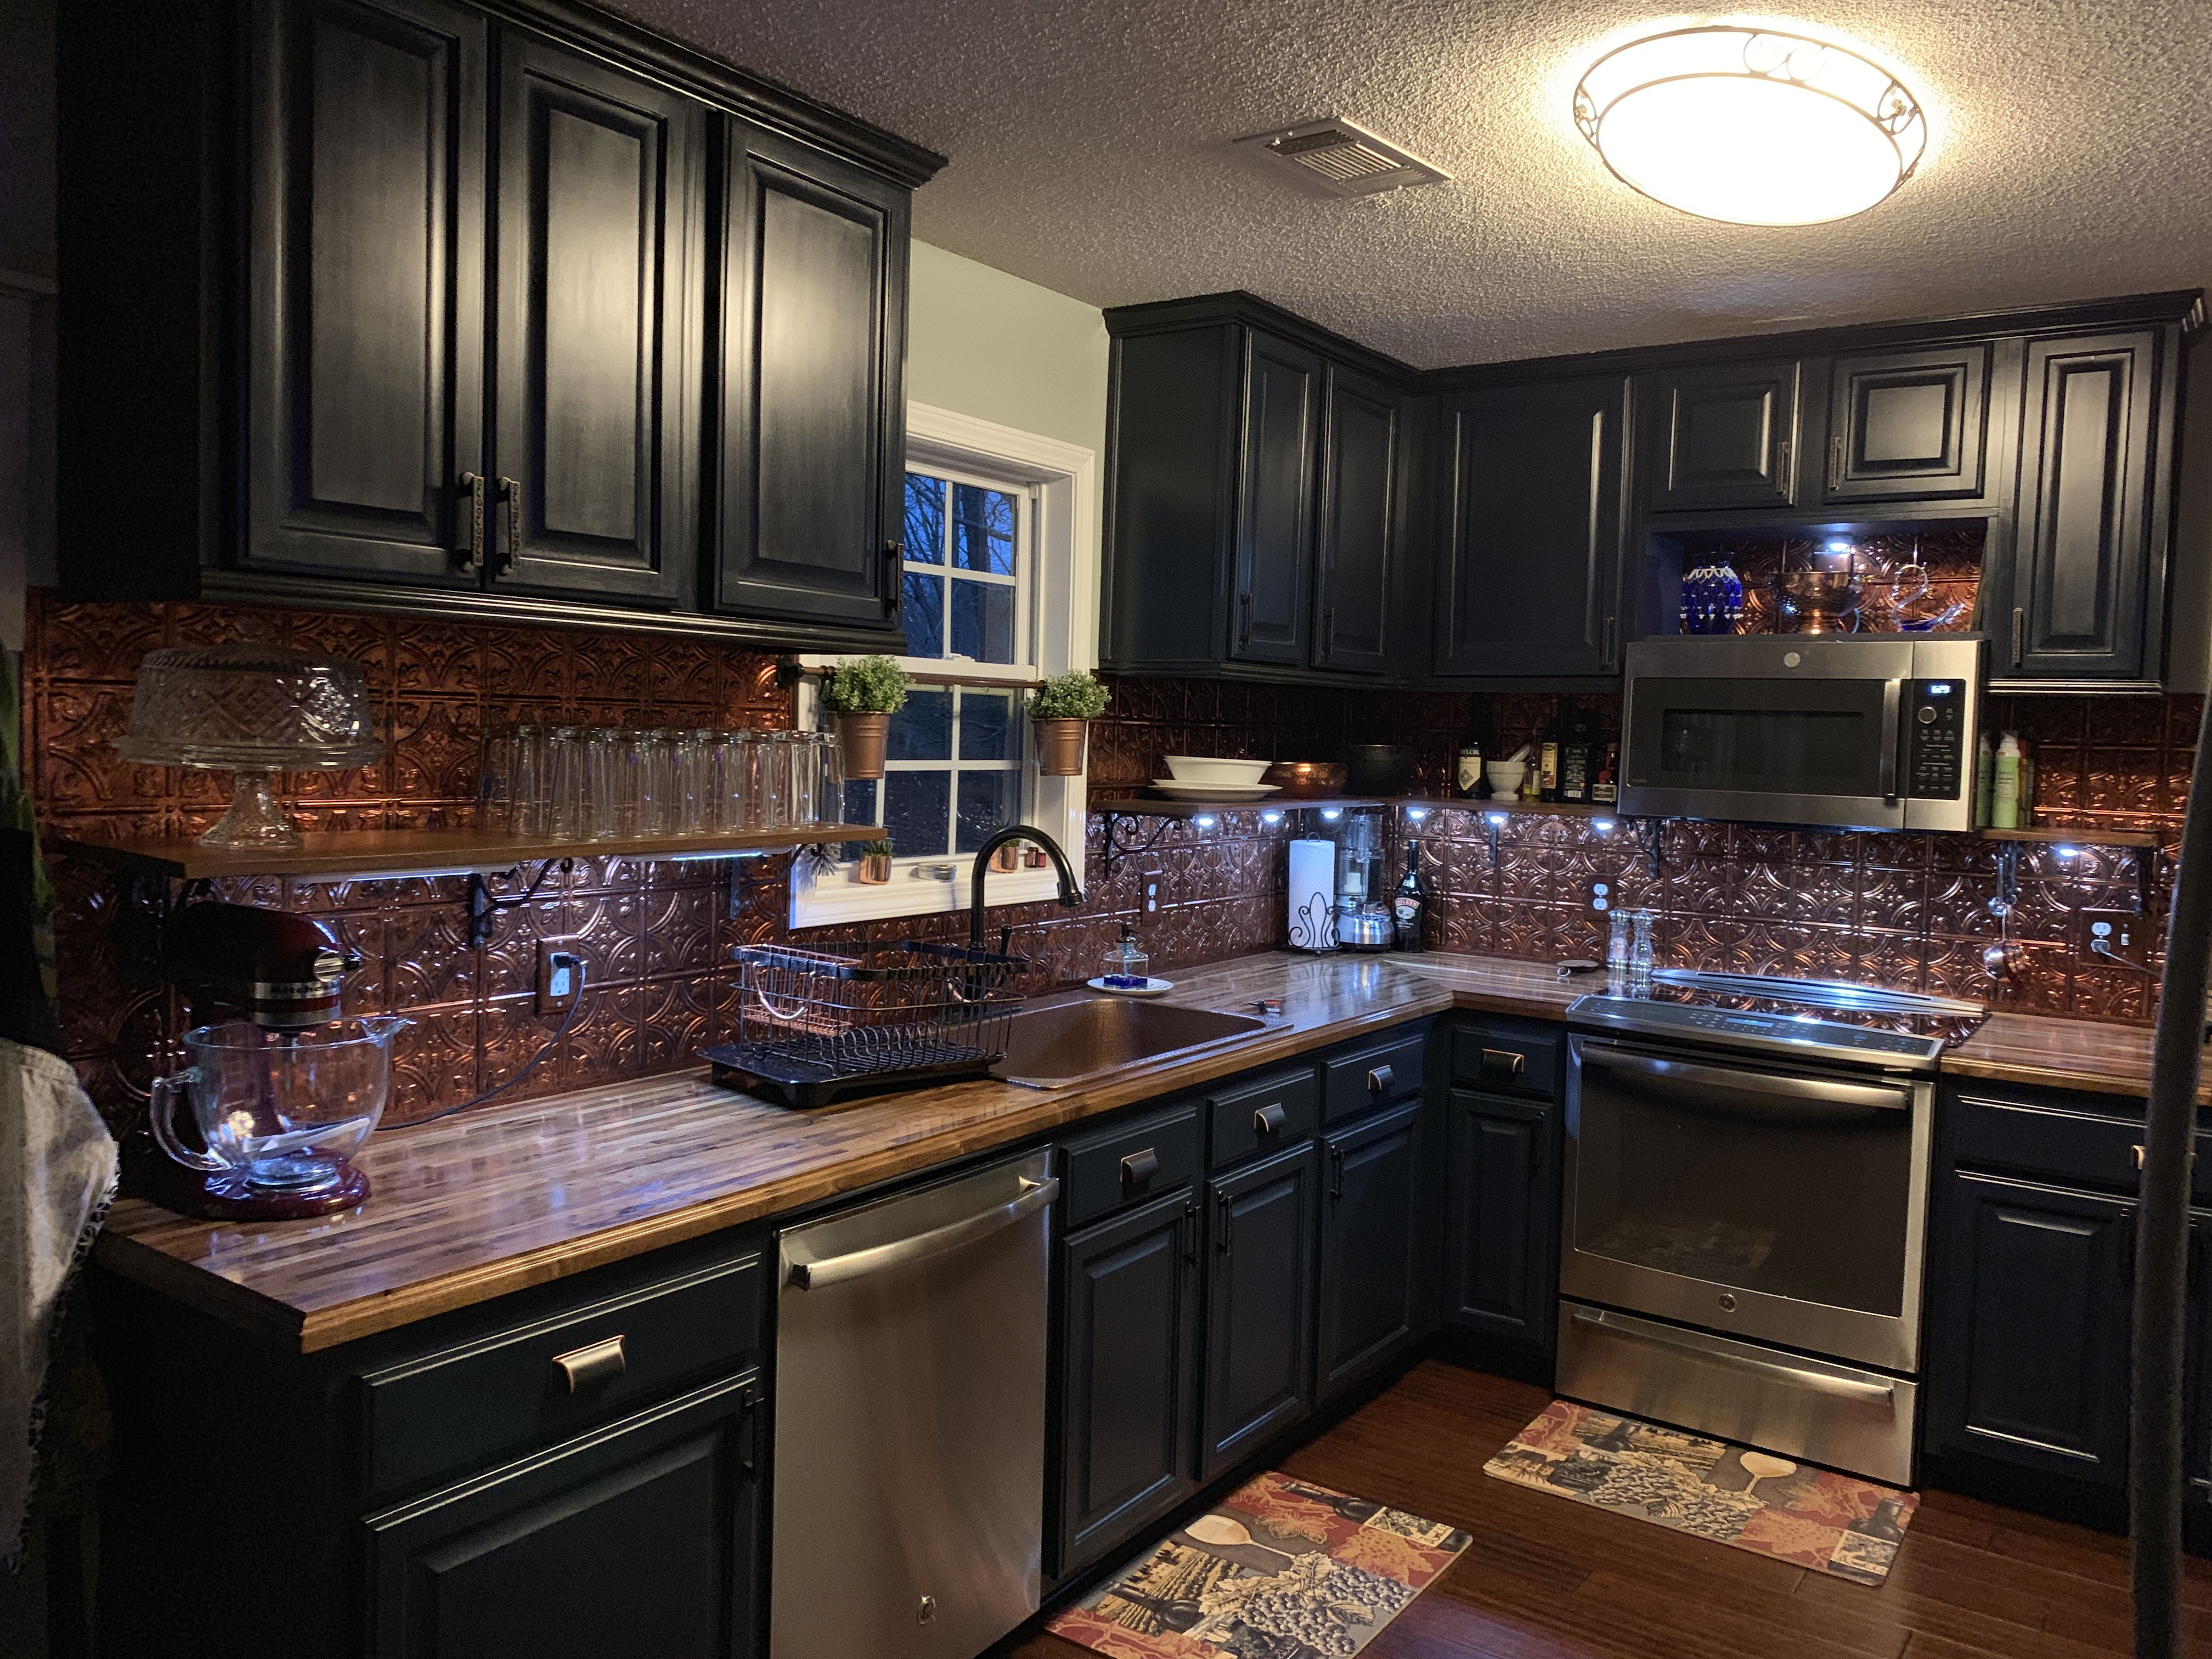 Midnight Blue Fusion Mineral Paint Kitchen With Sinkology Copper Sink And Fasade Moonstone Copper Backsplash Kitchen Paint Copper Backsplash Kitchen